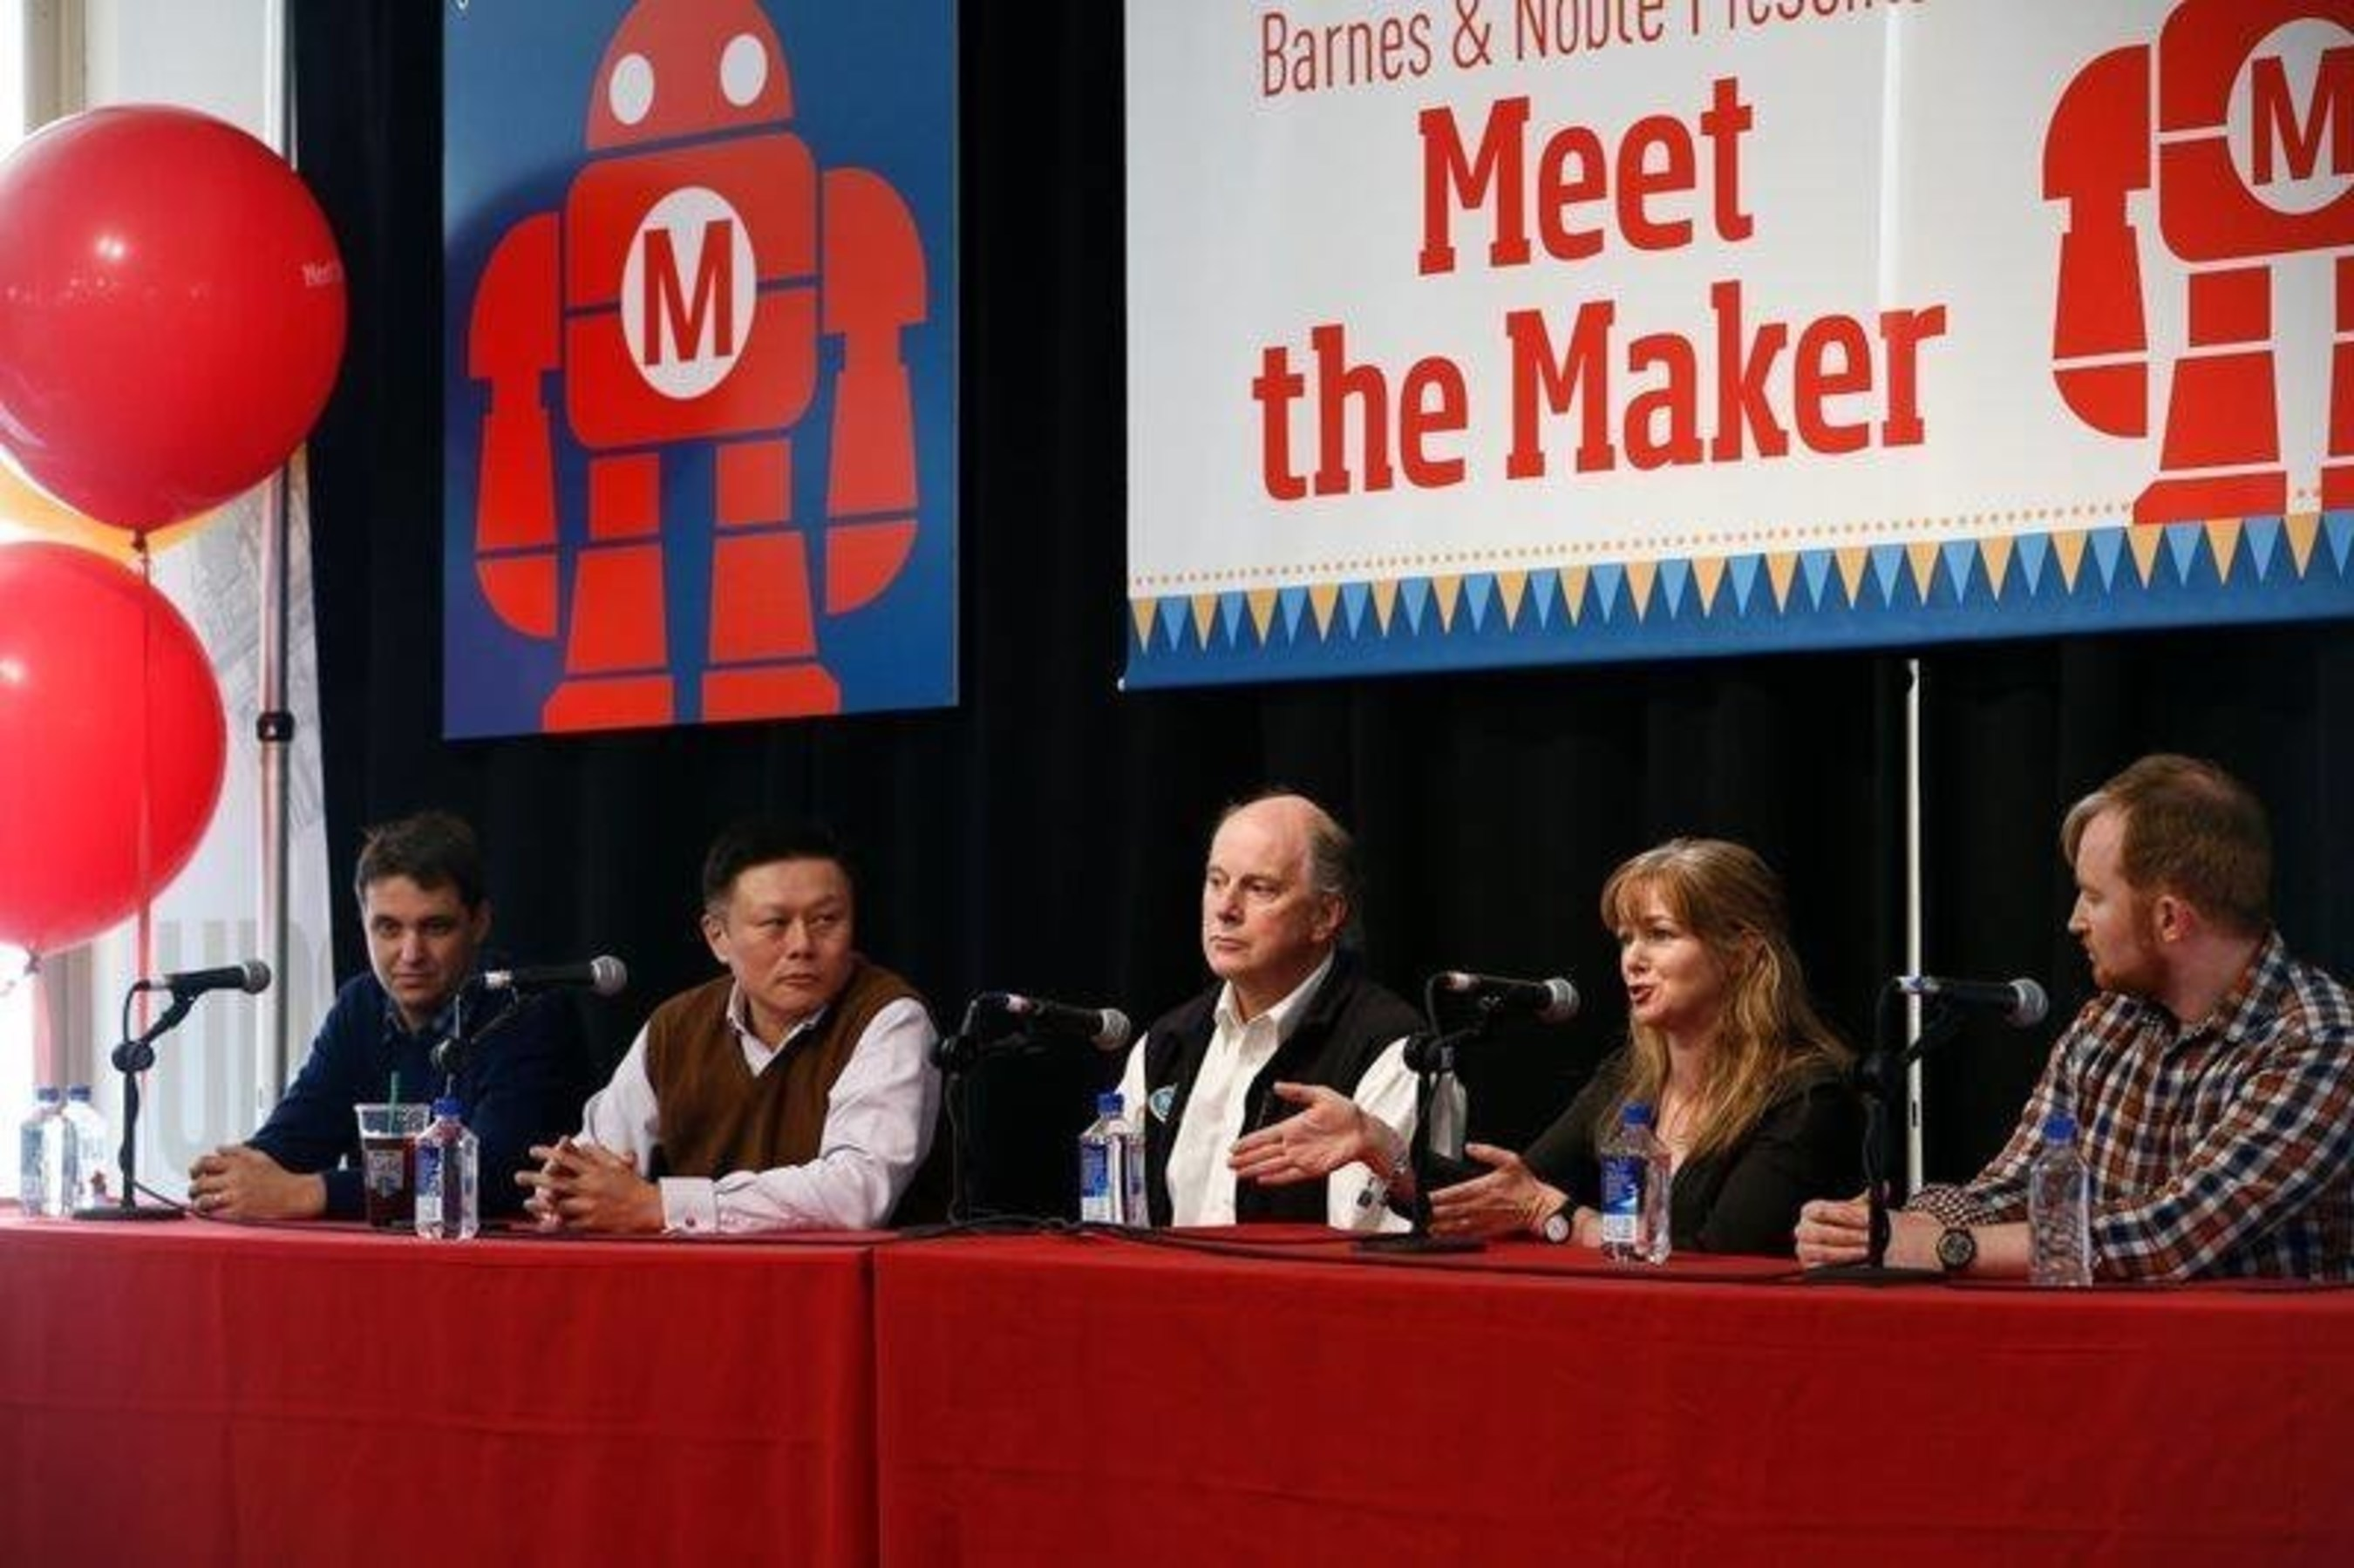 "From left to right: Dan Wempa, Vice President, External Affairs NYSCI; Simon Shen, CEO of XYZprinting; Bill Ritchie, founder of ThinkFun; Anita Murphy Founder of The Creativity Hub / Design Extraordinaires and Rory O'Connor, Founder of The Creativity Hub / Design Extraordinaires answer questions on innovation and creativity during Barnes and Noble Meet the ""Makers"" event."